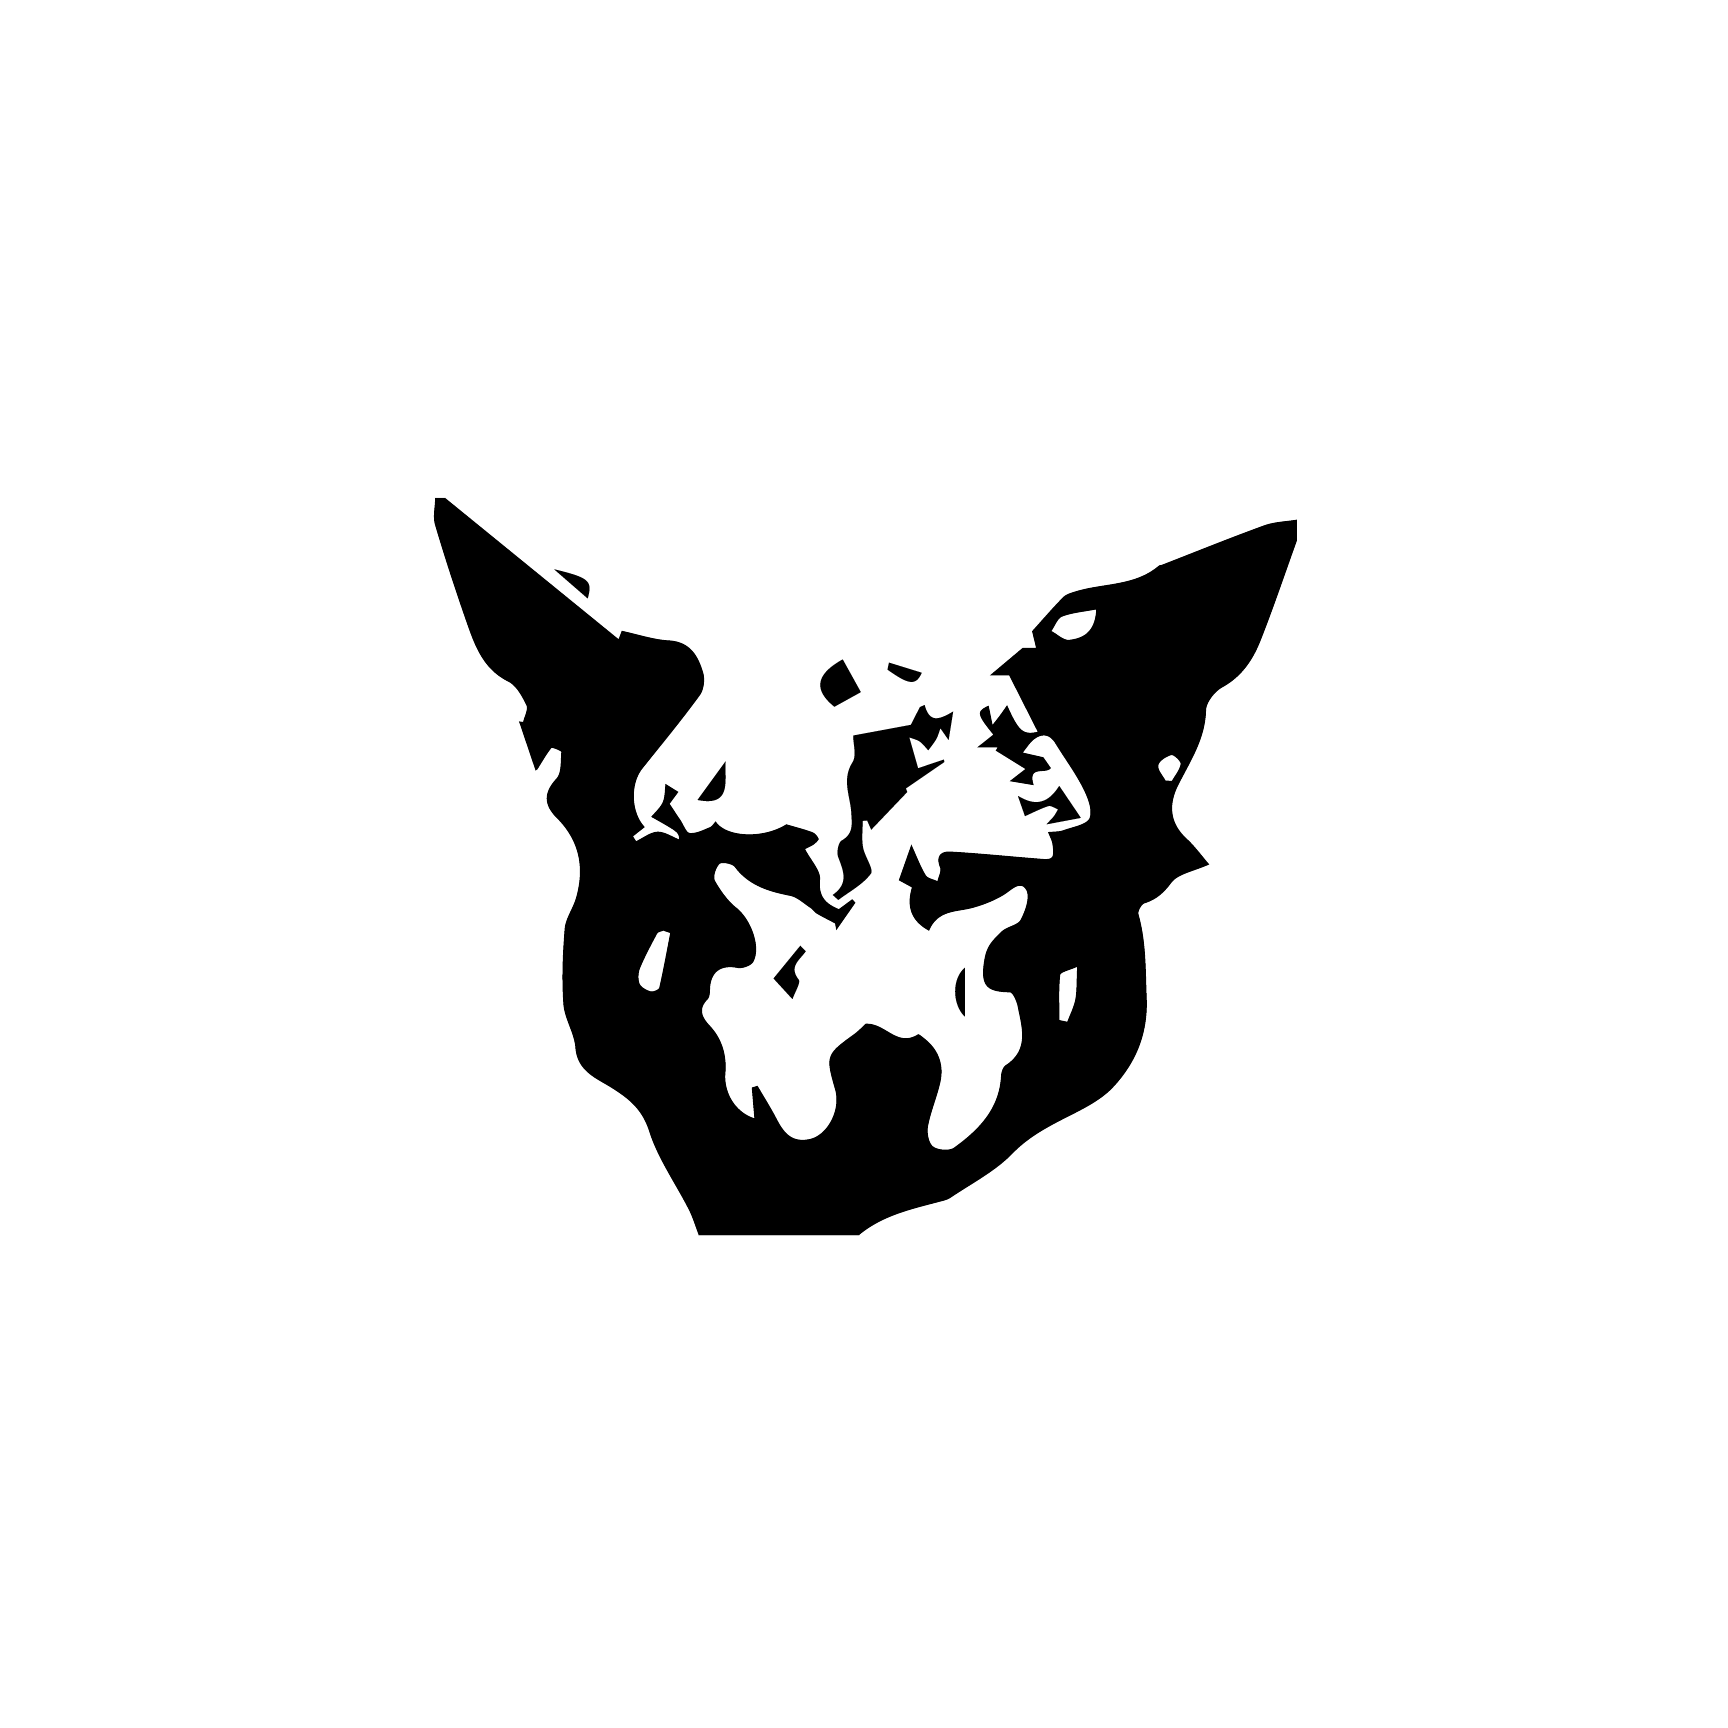 OFFICIAL WOLF HEAD LOGO